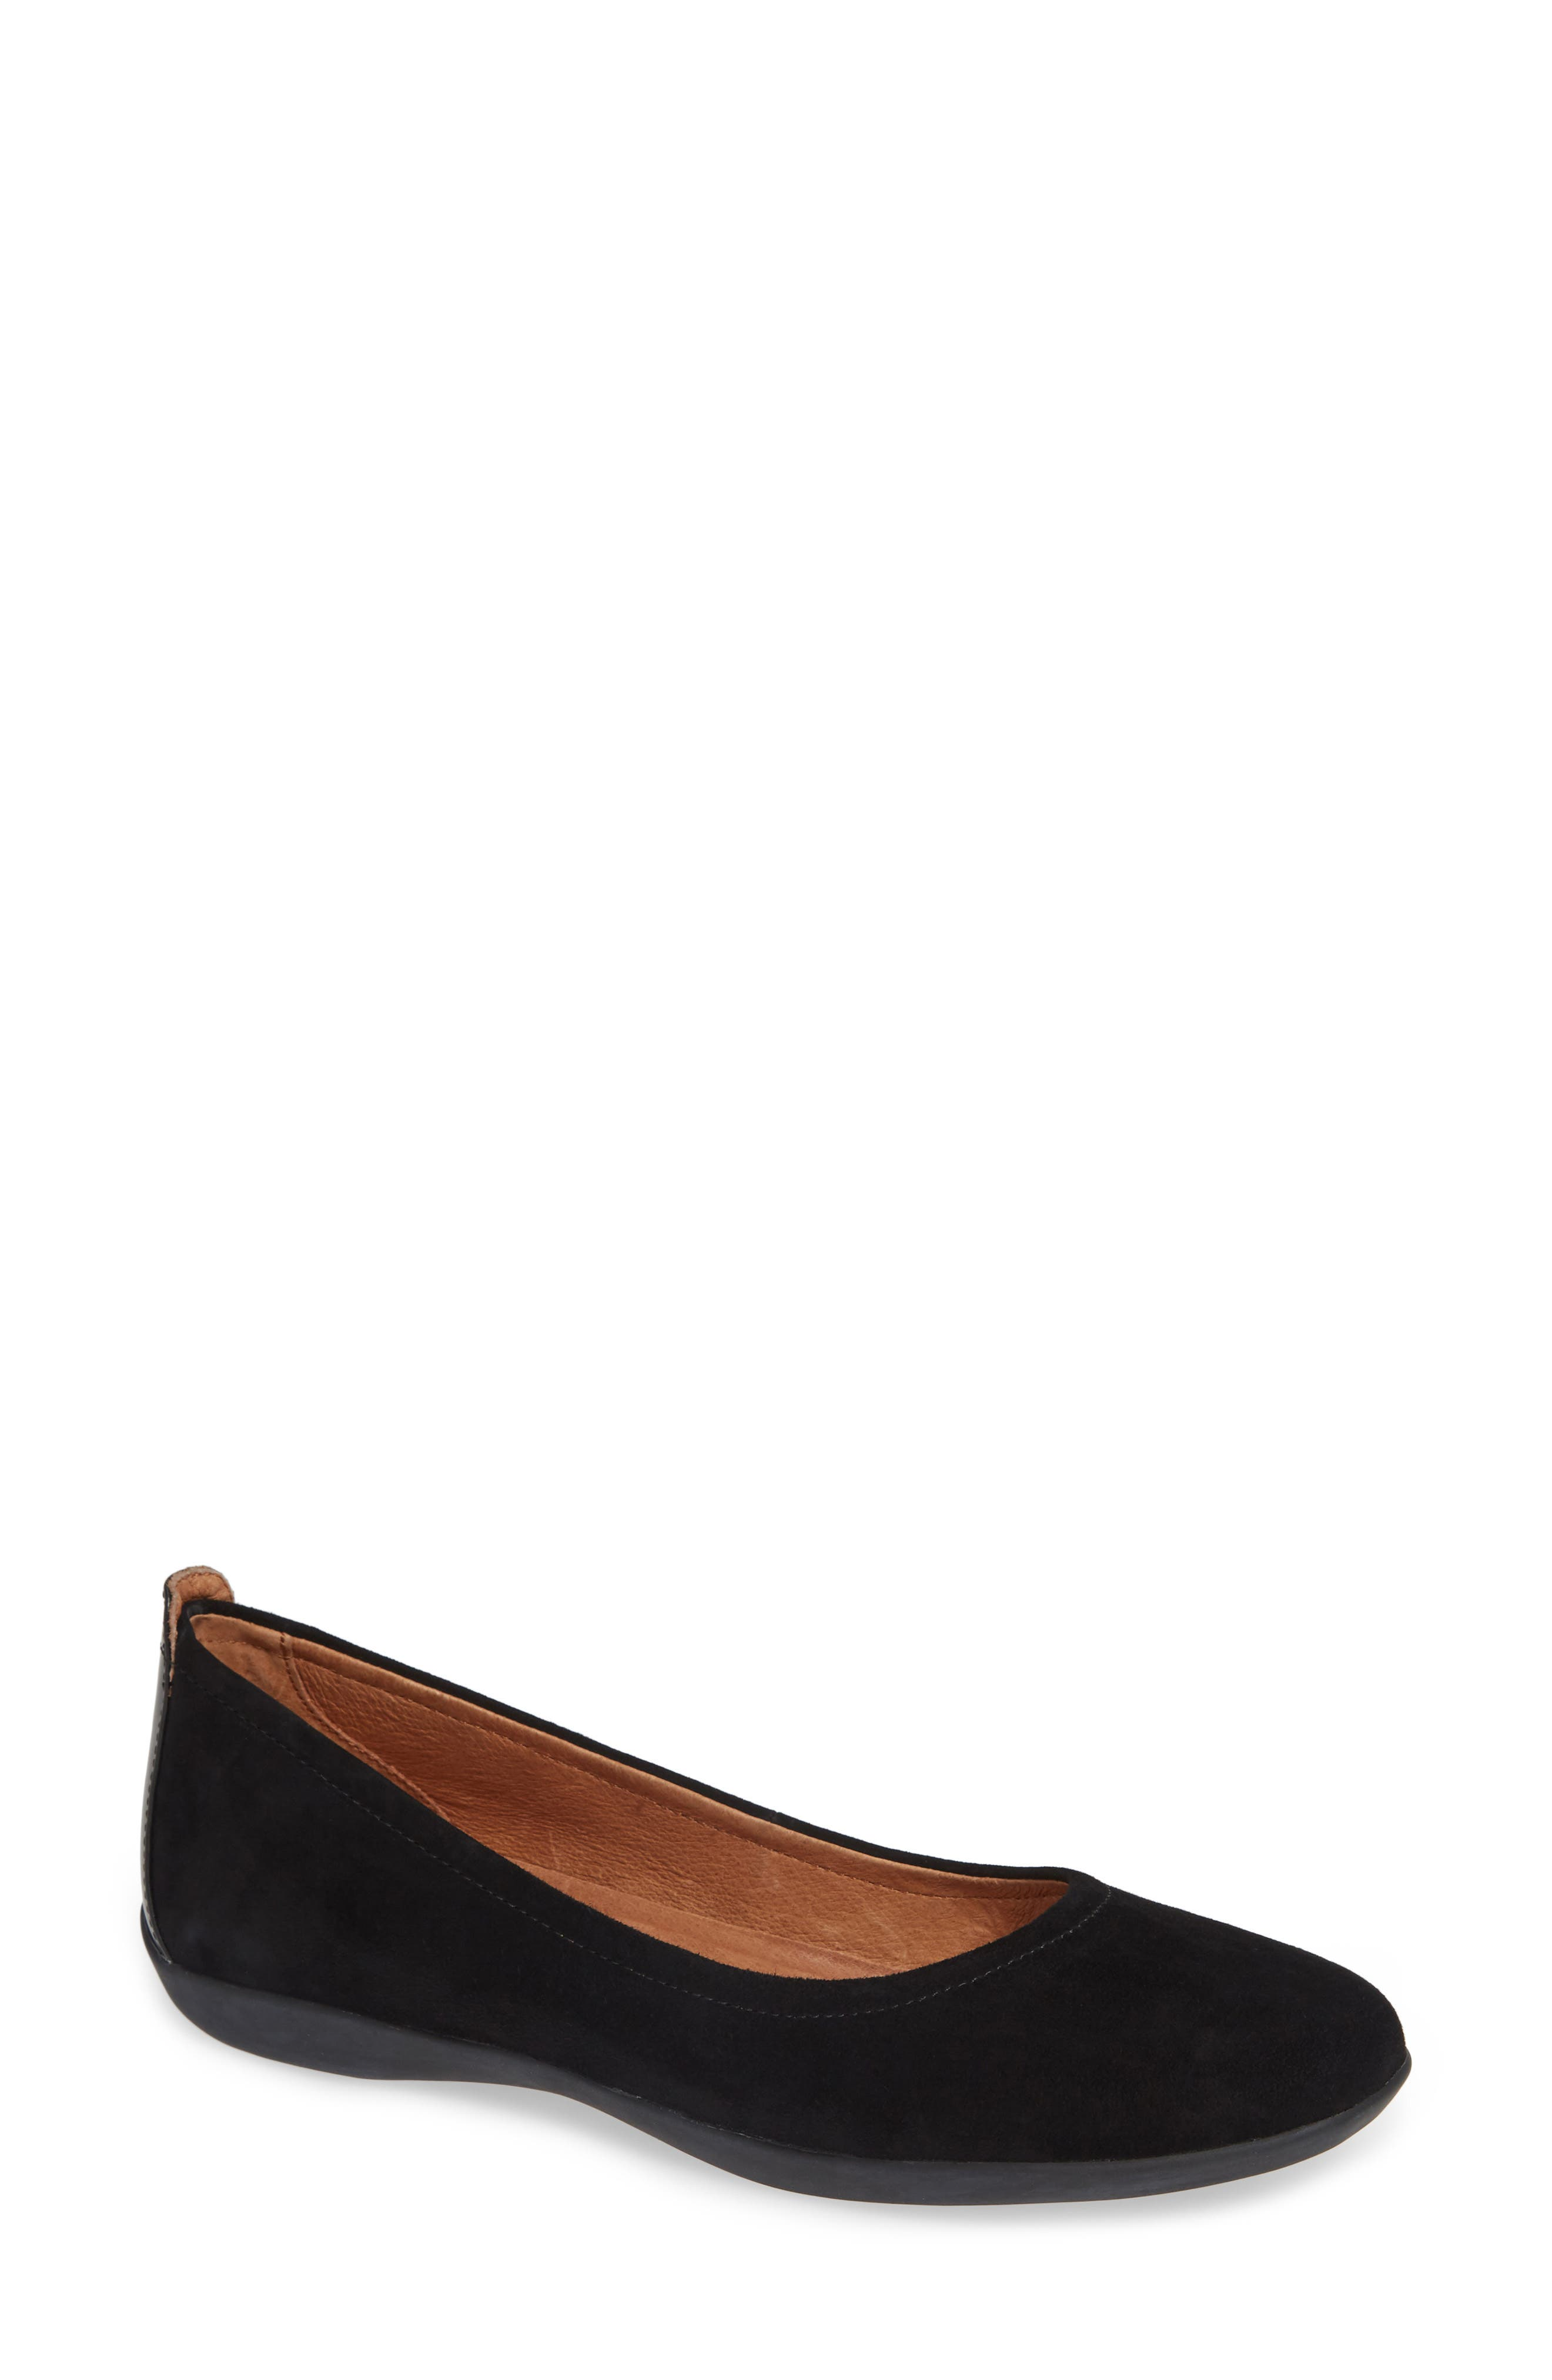 SUDINI, Lily Flat, Main thumbnail 1, color, BLACK SUEDE